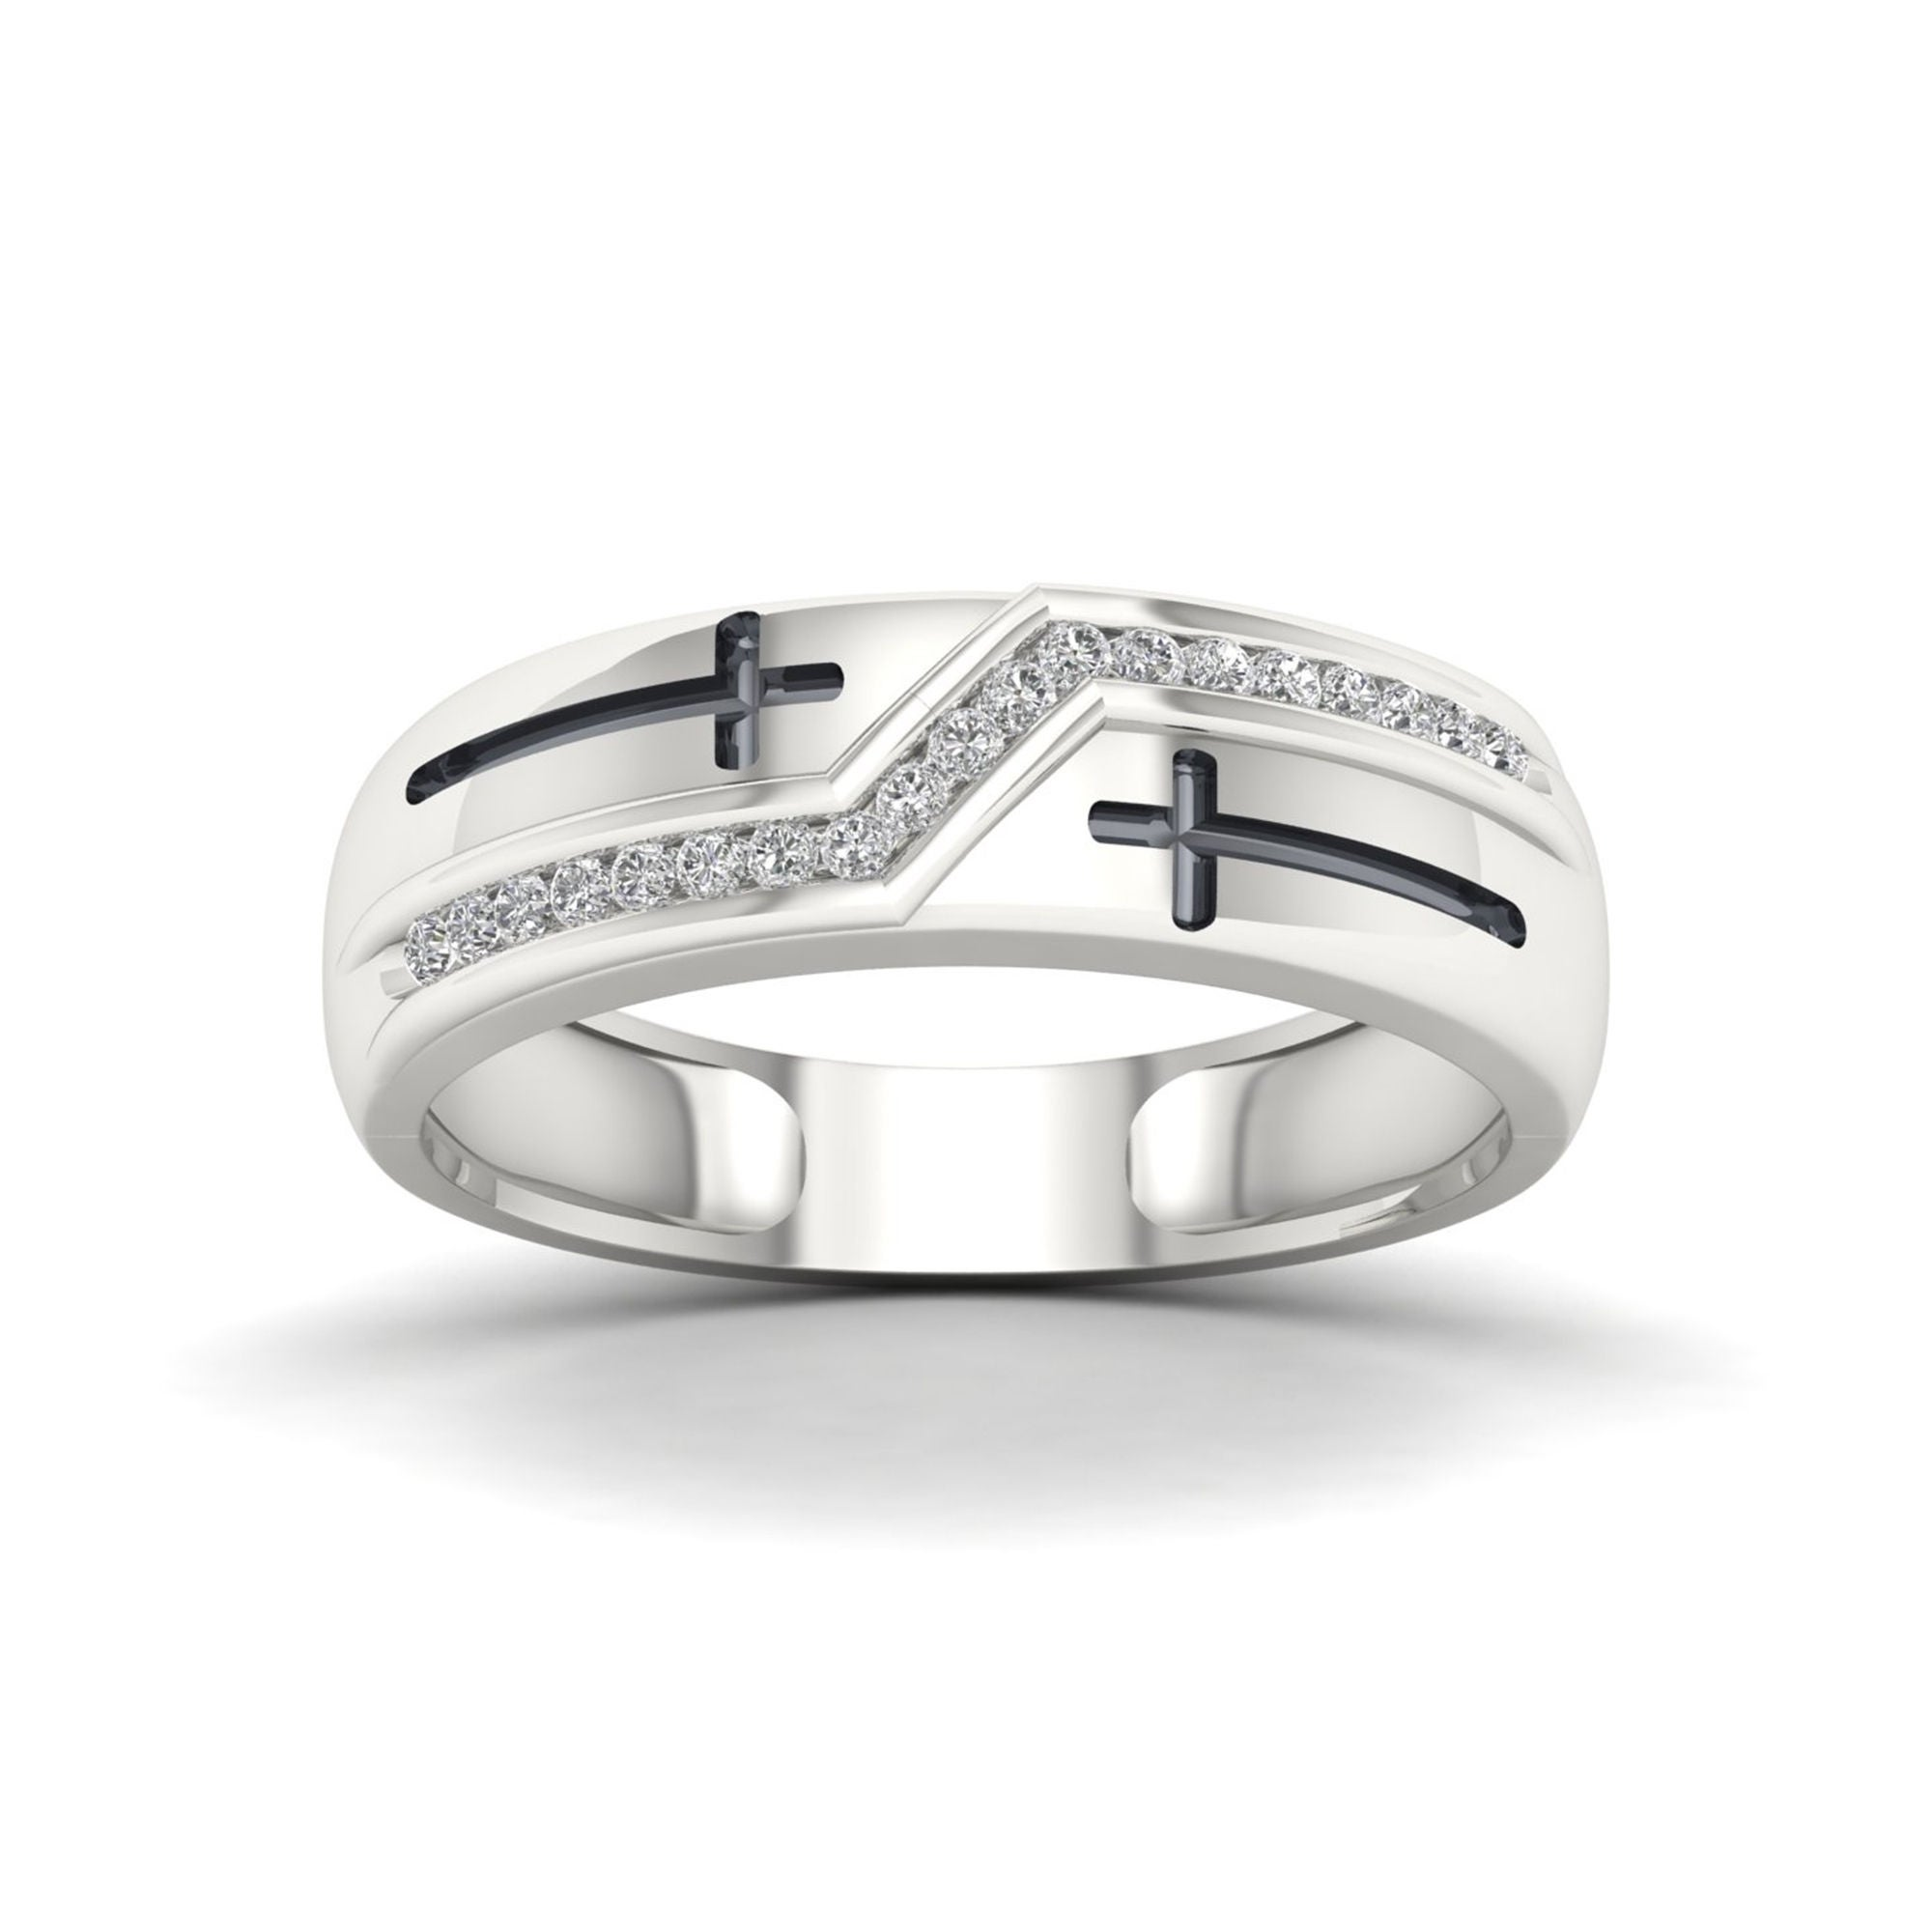 Sterling Silver Mens Round Pave-set Diamond Elevated Band Ring 0.18 Cttw